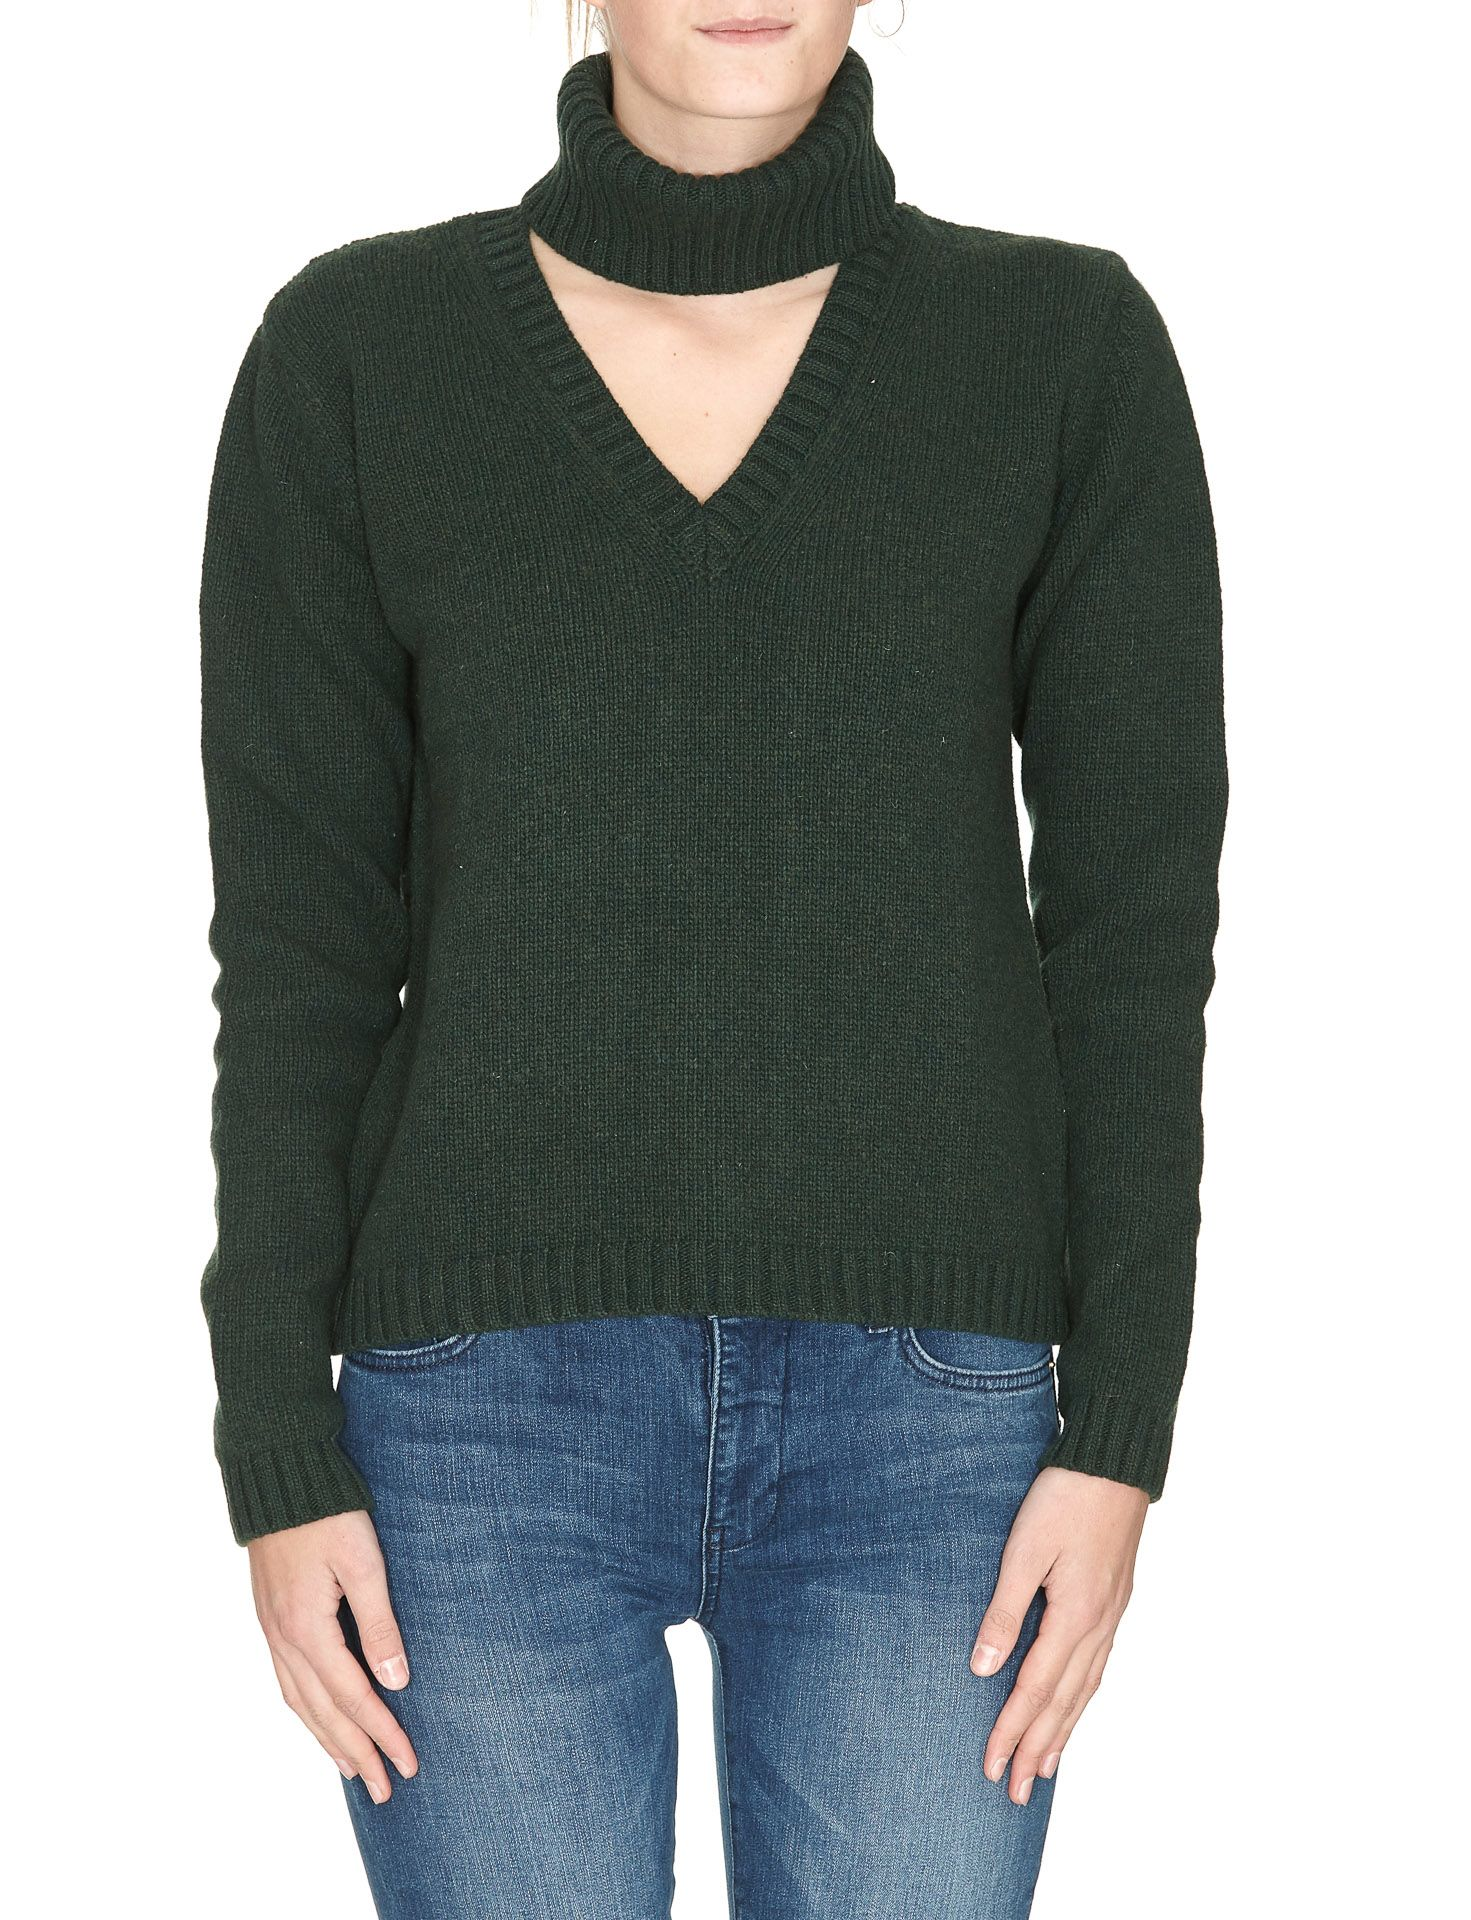 Department 5 Nima Sweater With Collar